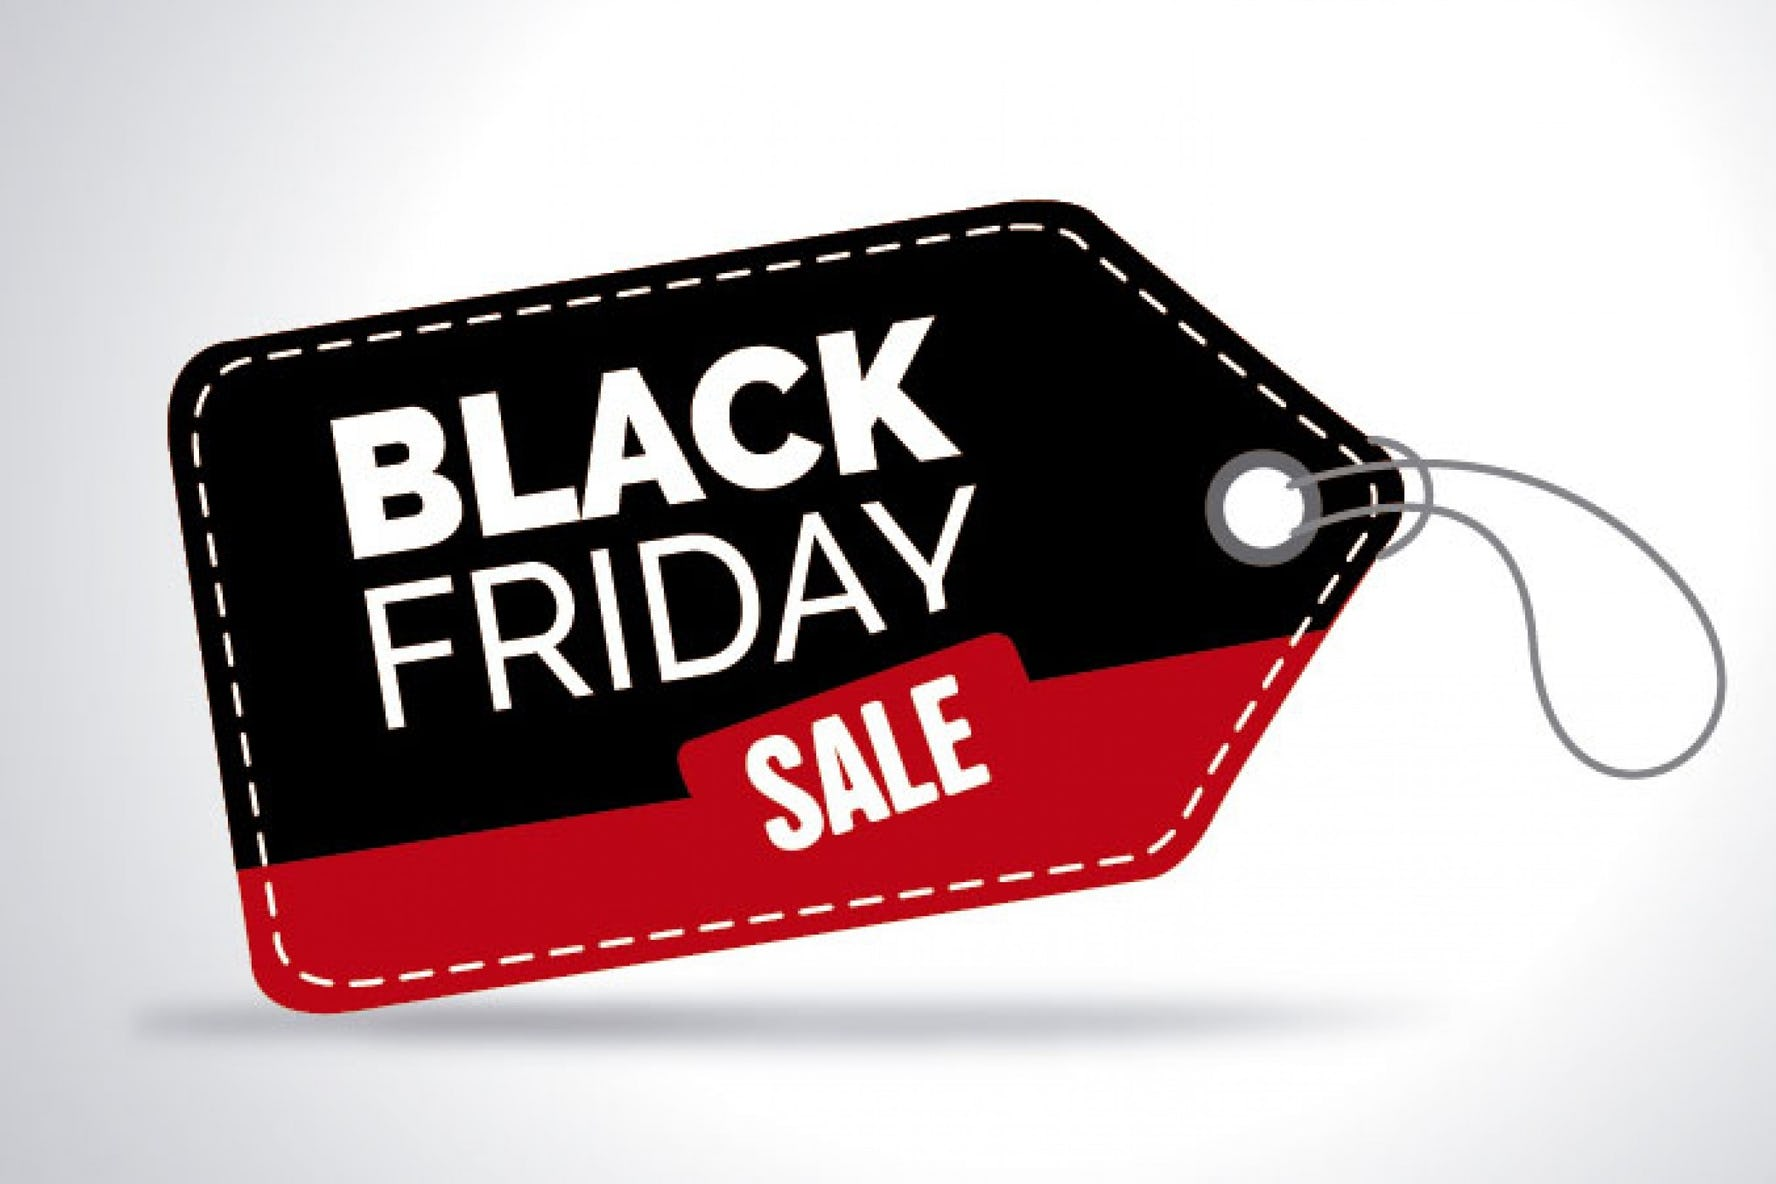 c9a3a97deb7f7 Industry Black Friday and Cyber Monday Deals - Racer X Online